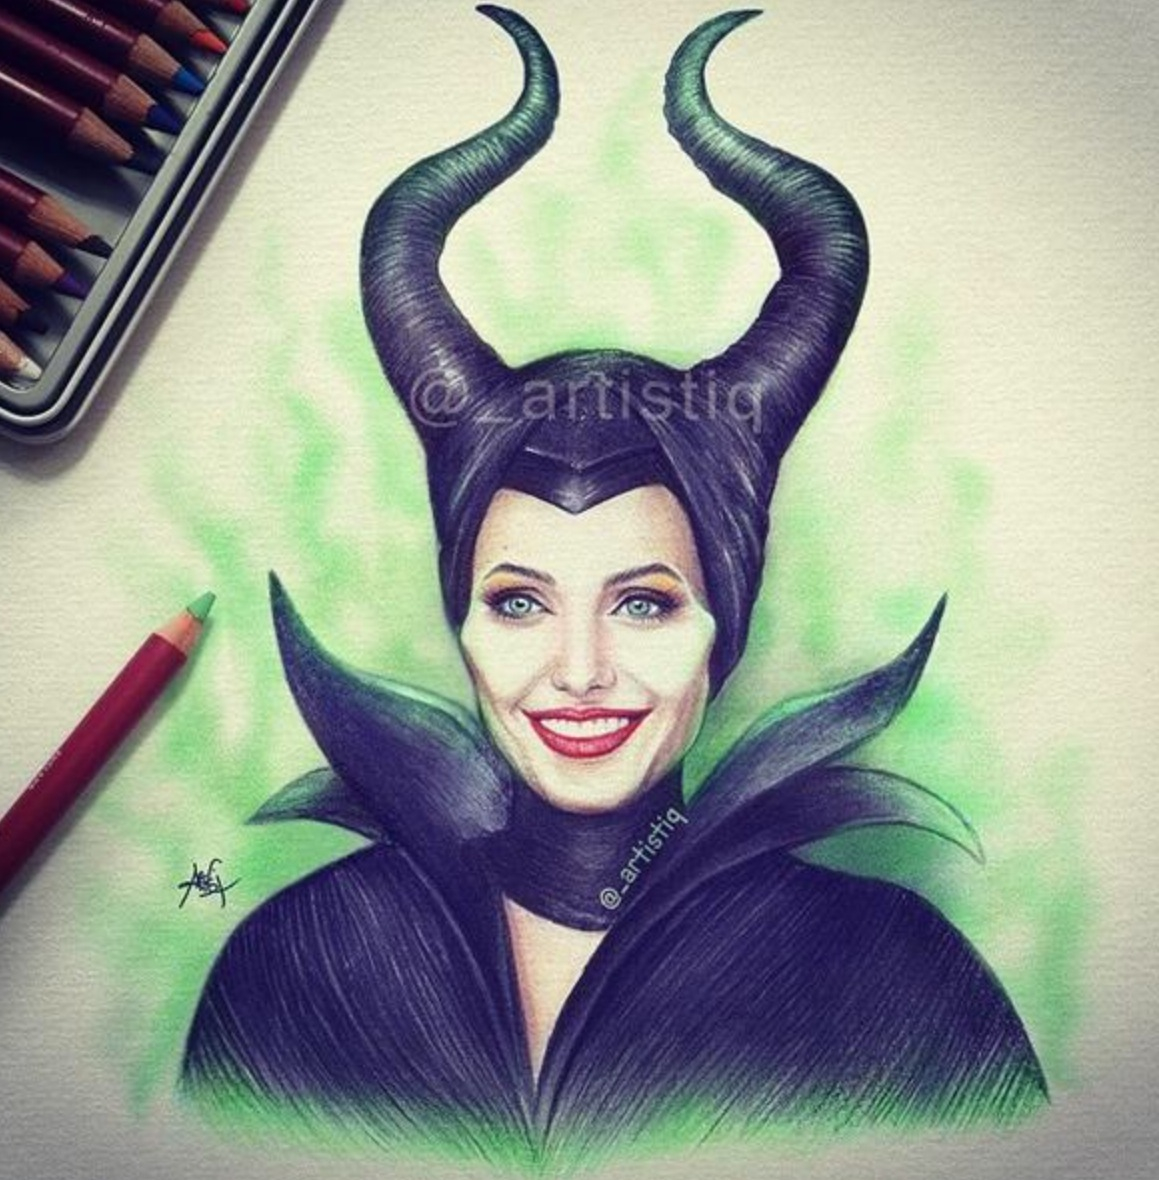 Maleficent drawing by artistiq discovered by dada smile